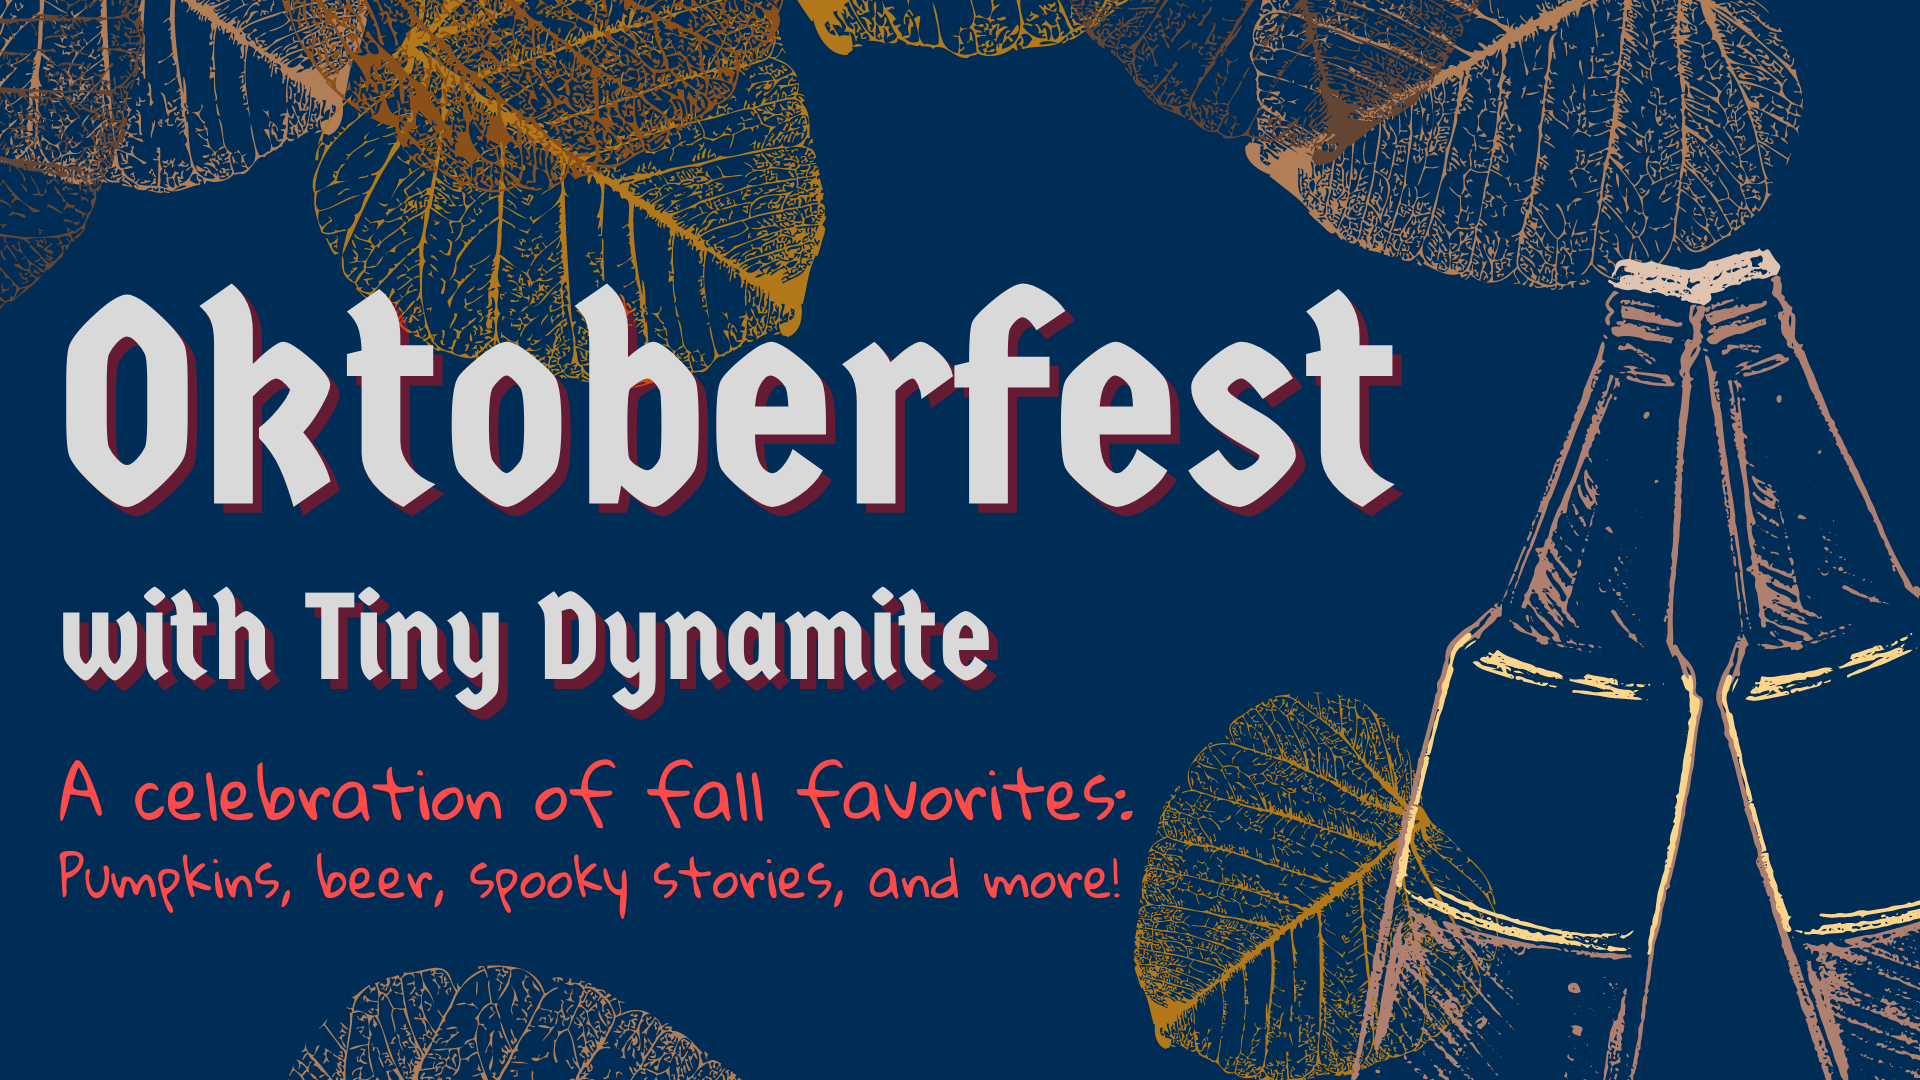 """Orange leaves and a drawing of two beer bottles clinking on a blue background with the words """"Oktoberfest with Tiny Dynamite. A celebration of fall favorites: Pumpkins, beer, spooky stories, and more!"""